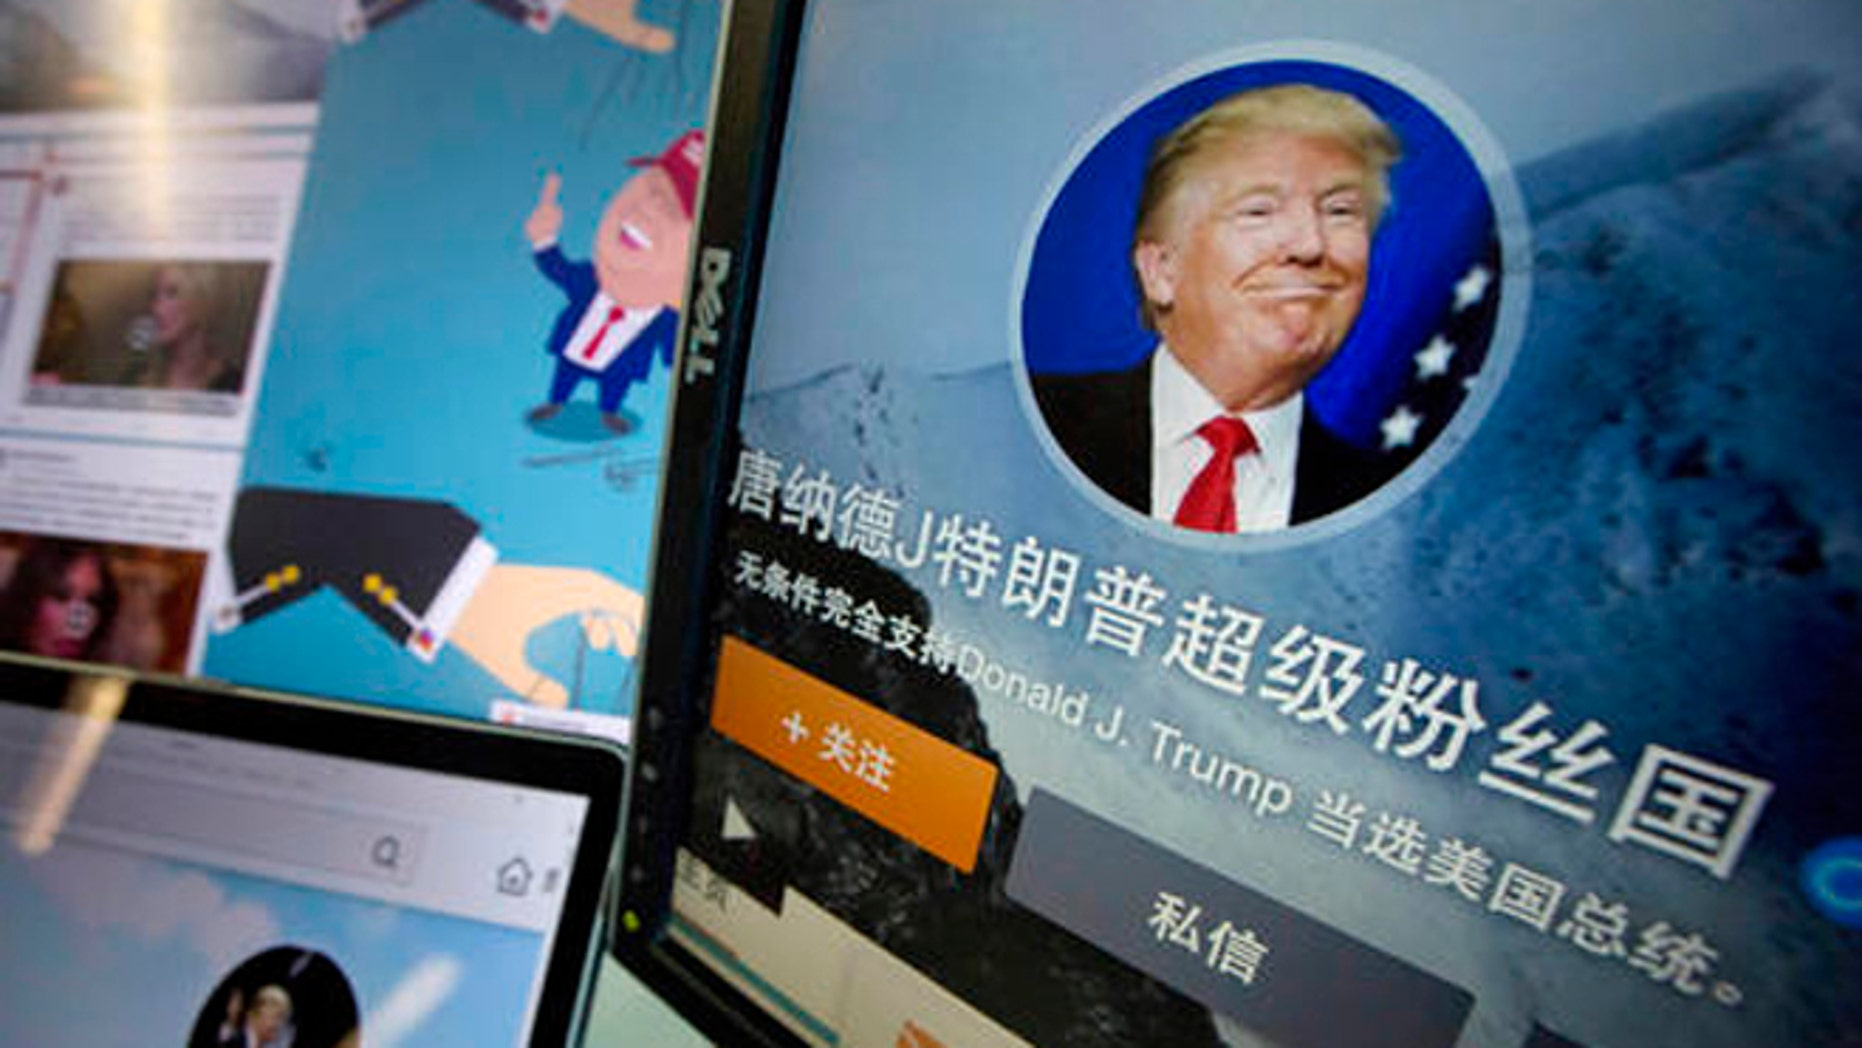 """In this May 18, 2016 photo, Chinese fan websites for Donald Trump are displayed on a computer with the words """"Donald J. Trump super fan nation, Full and unconditional support for Donald J. Trump to be elected U.S. president"""" in Beijing, China. China features prominently in the rhetoric of presumed Republican presidential candidate Donald Trump, who accuses the country of stealing American jobs and cheating at global trade. In China itself, though, hes only now emerging as a public figure, despite a notoriety elsewhere for his voluble utterances, high-profile businesses and reality TV show. (AP Photo/Ng Han Guan)"""